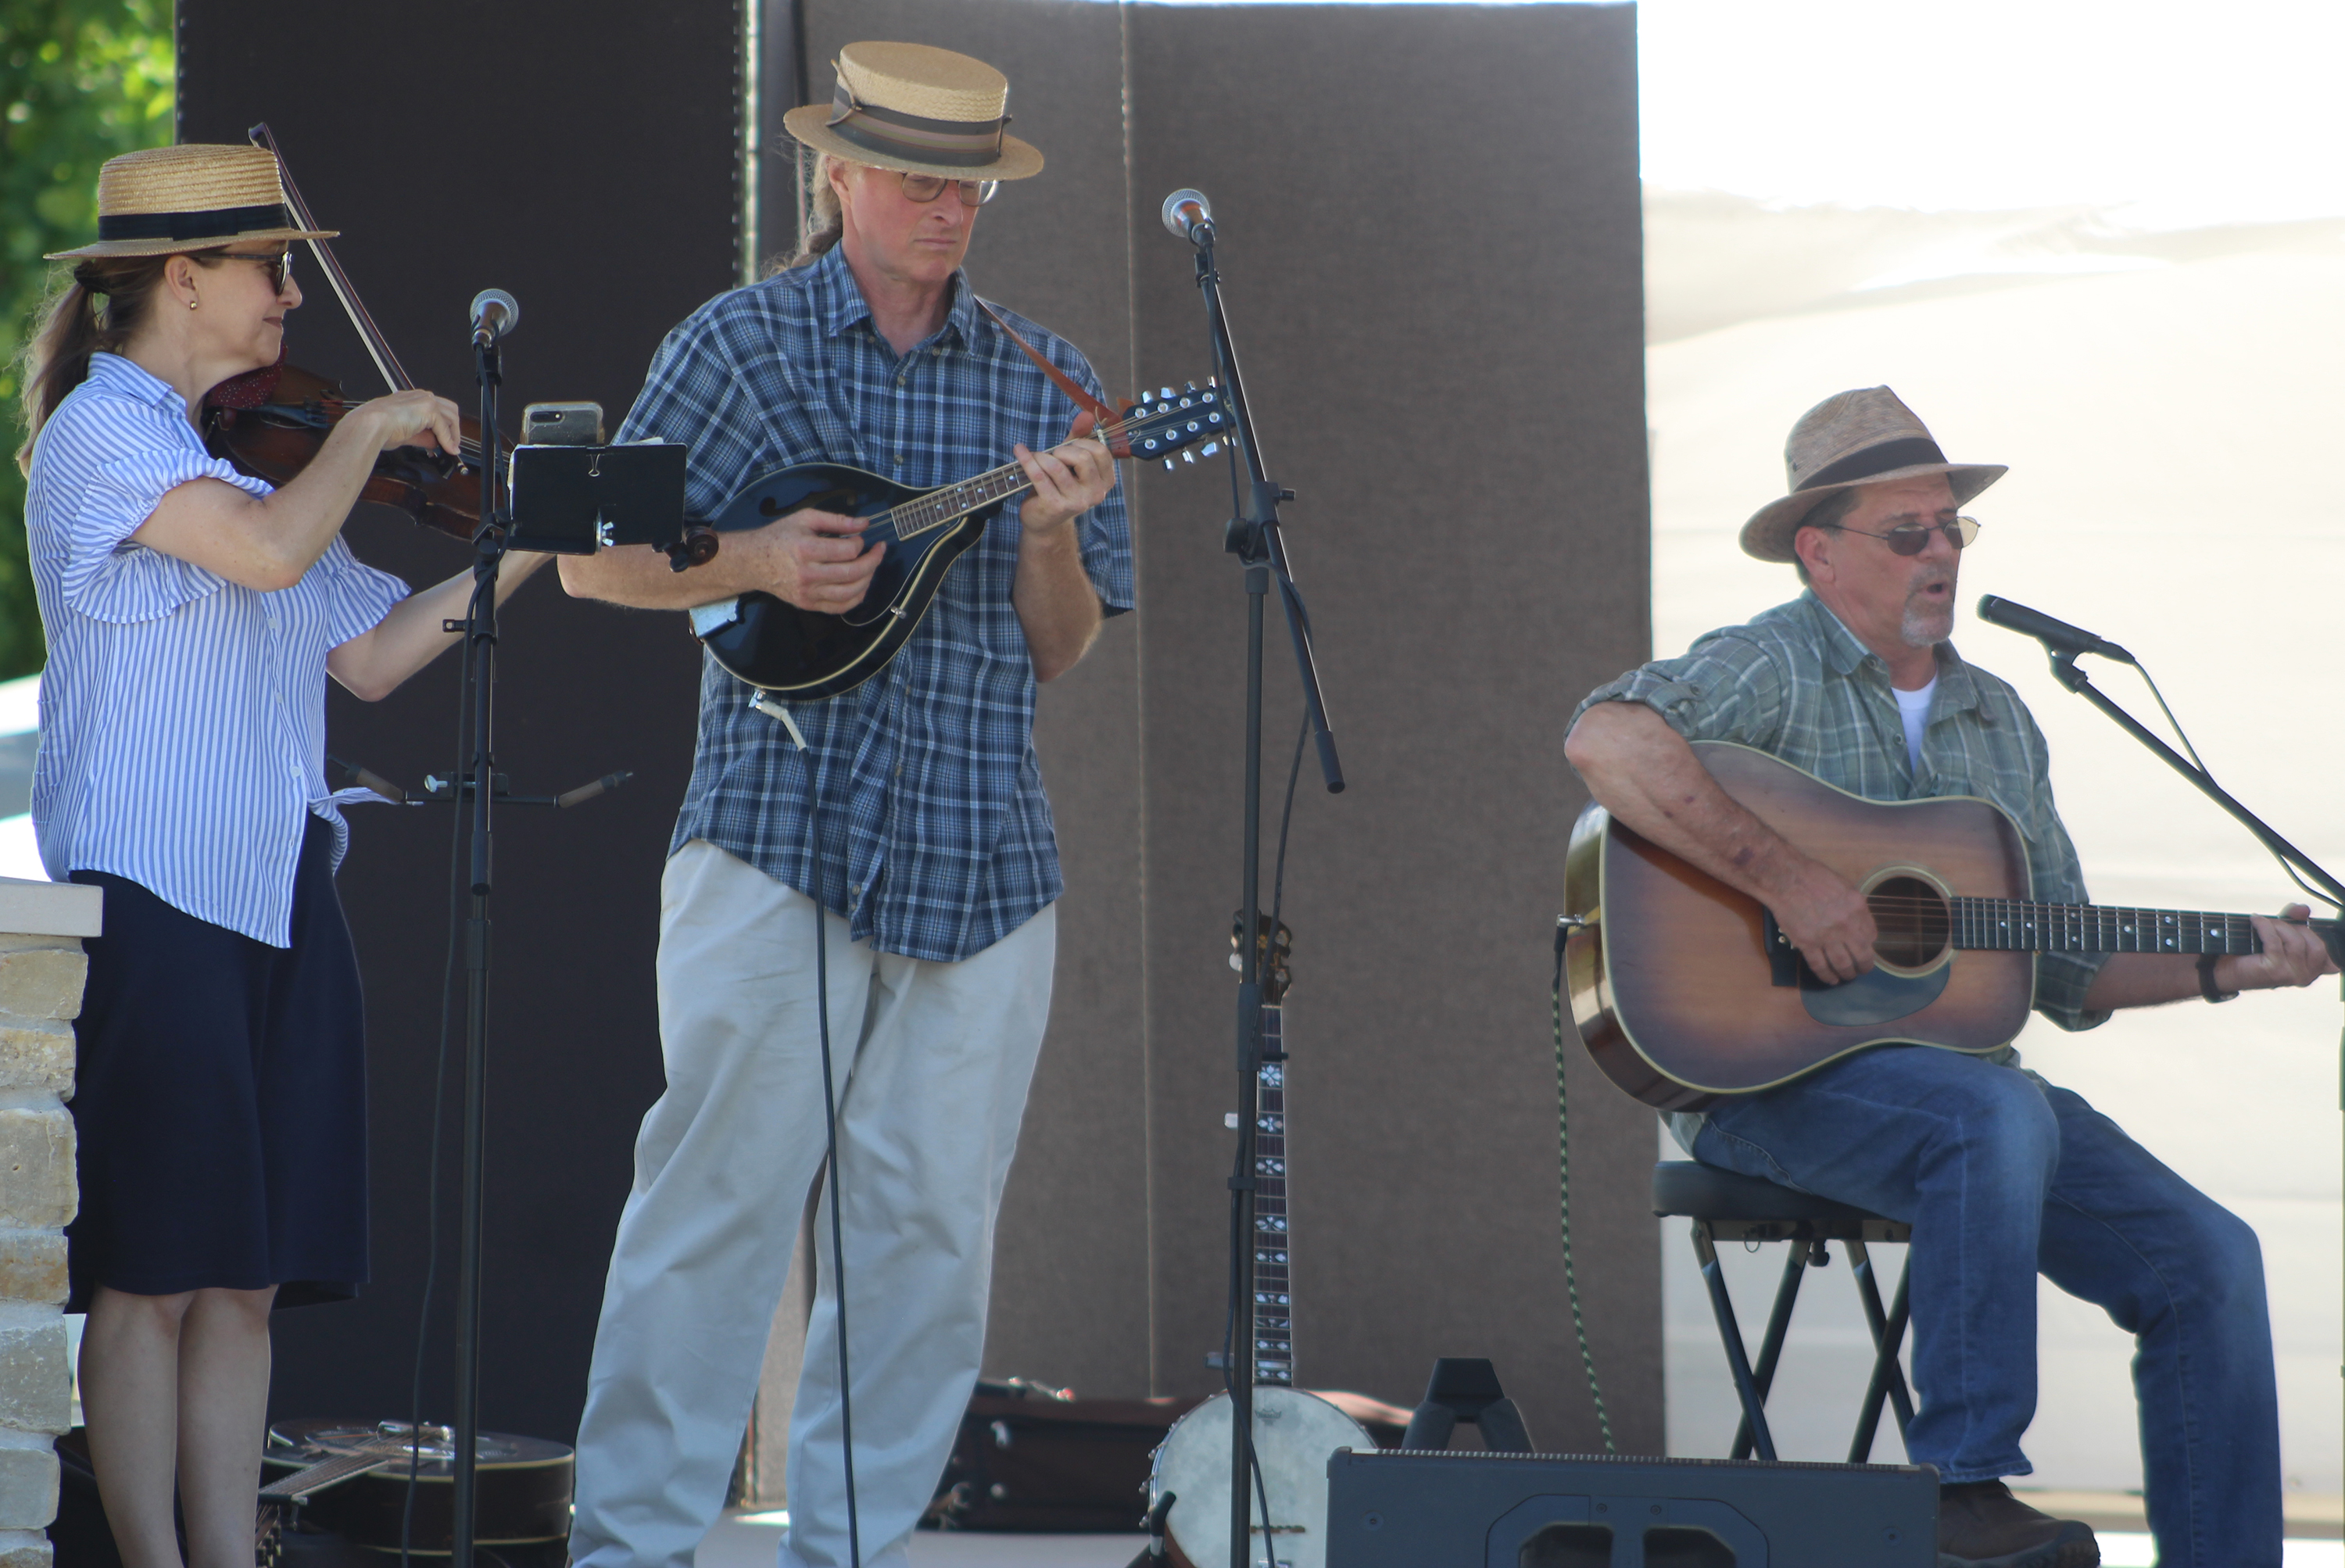 Musician Pat Wiley, right, of Clintonville, is joined by Frogwater, a duo from Milwaukee by the names of Susan and John Nicholson, during the folk music portion of Arts in the Park held June 12 at Franklin Park.(Lee Pulaski | NEW Media)